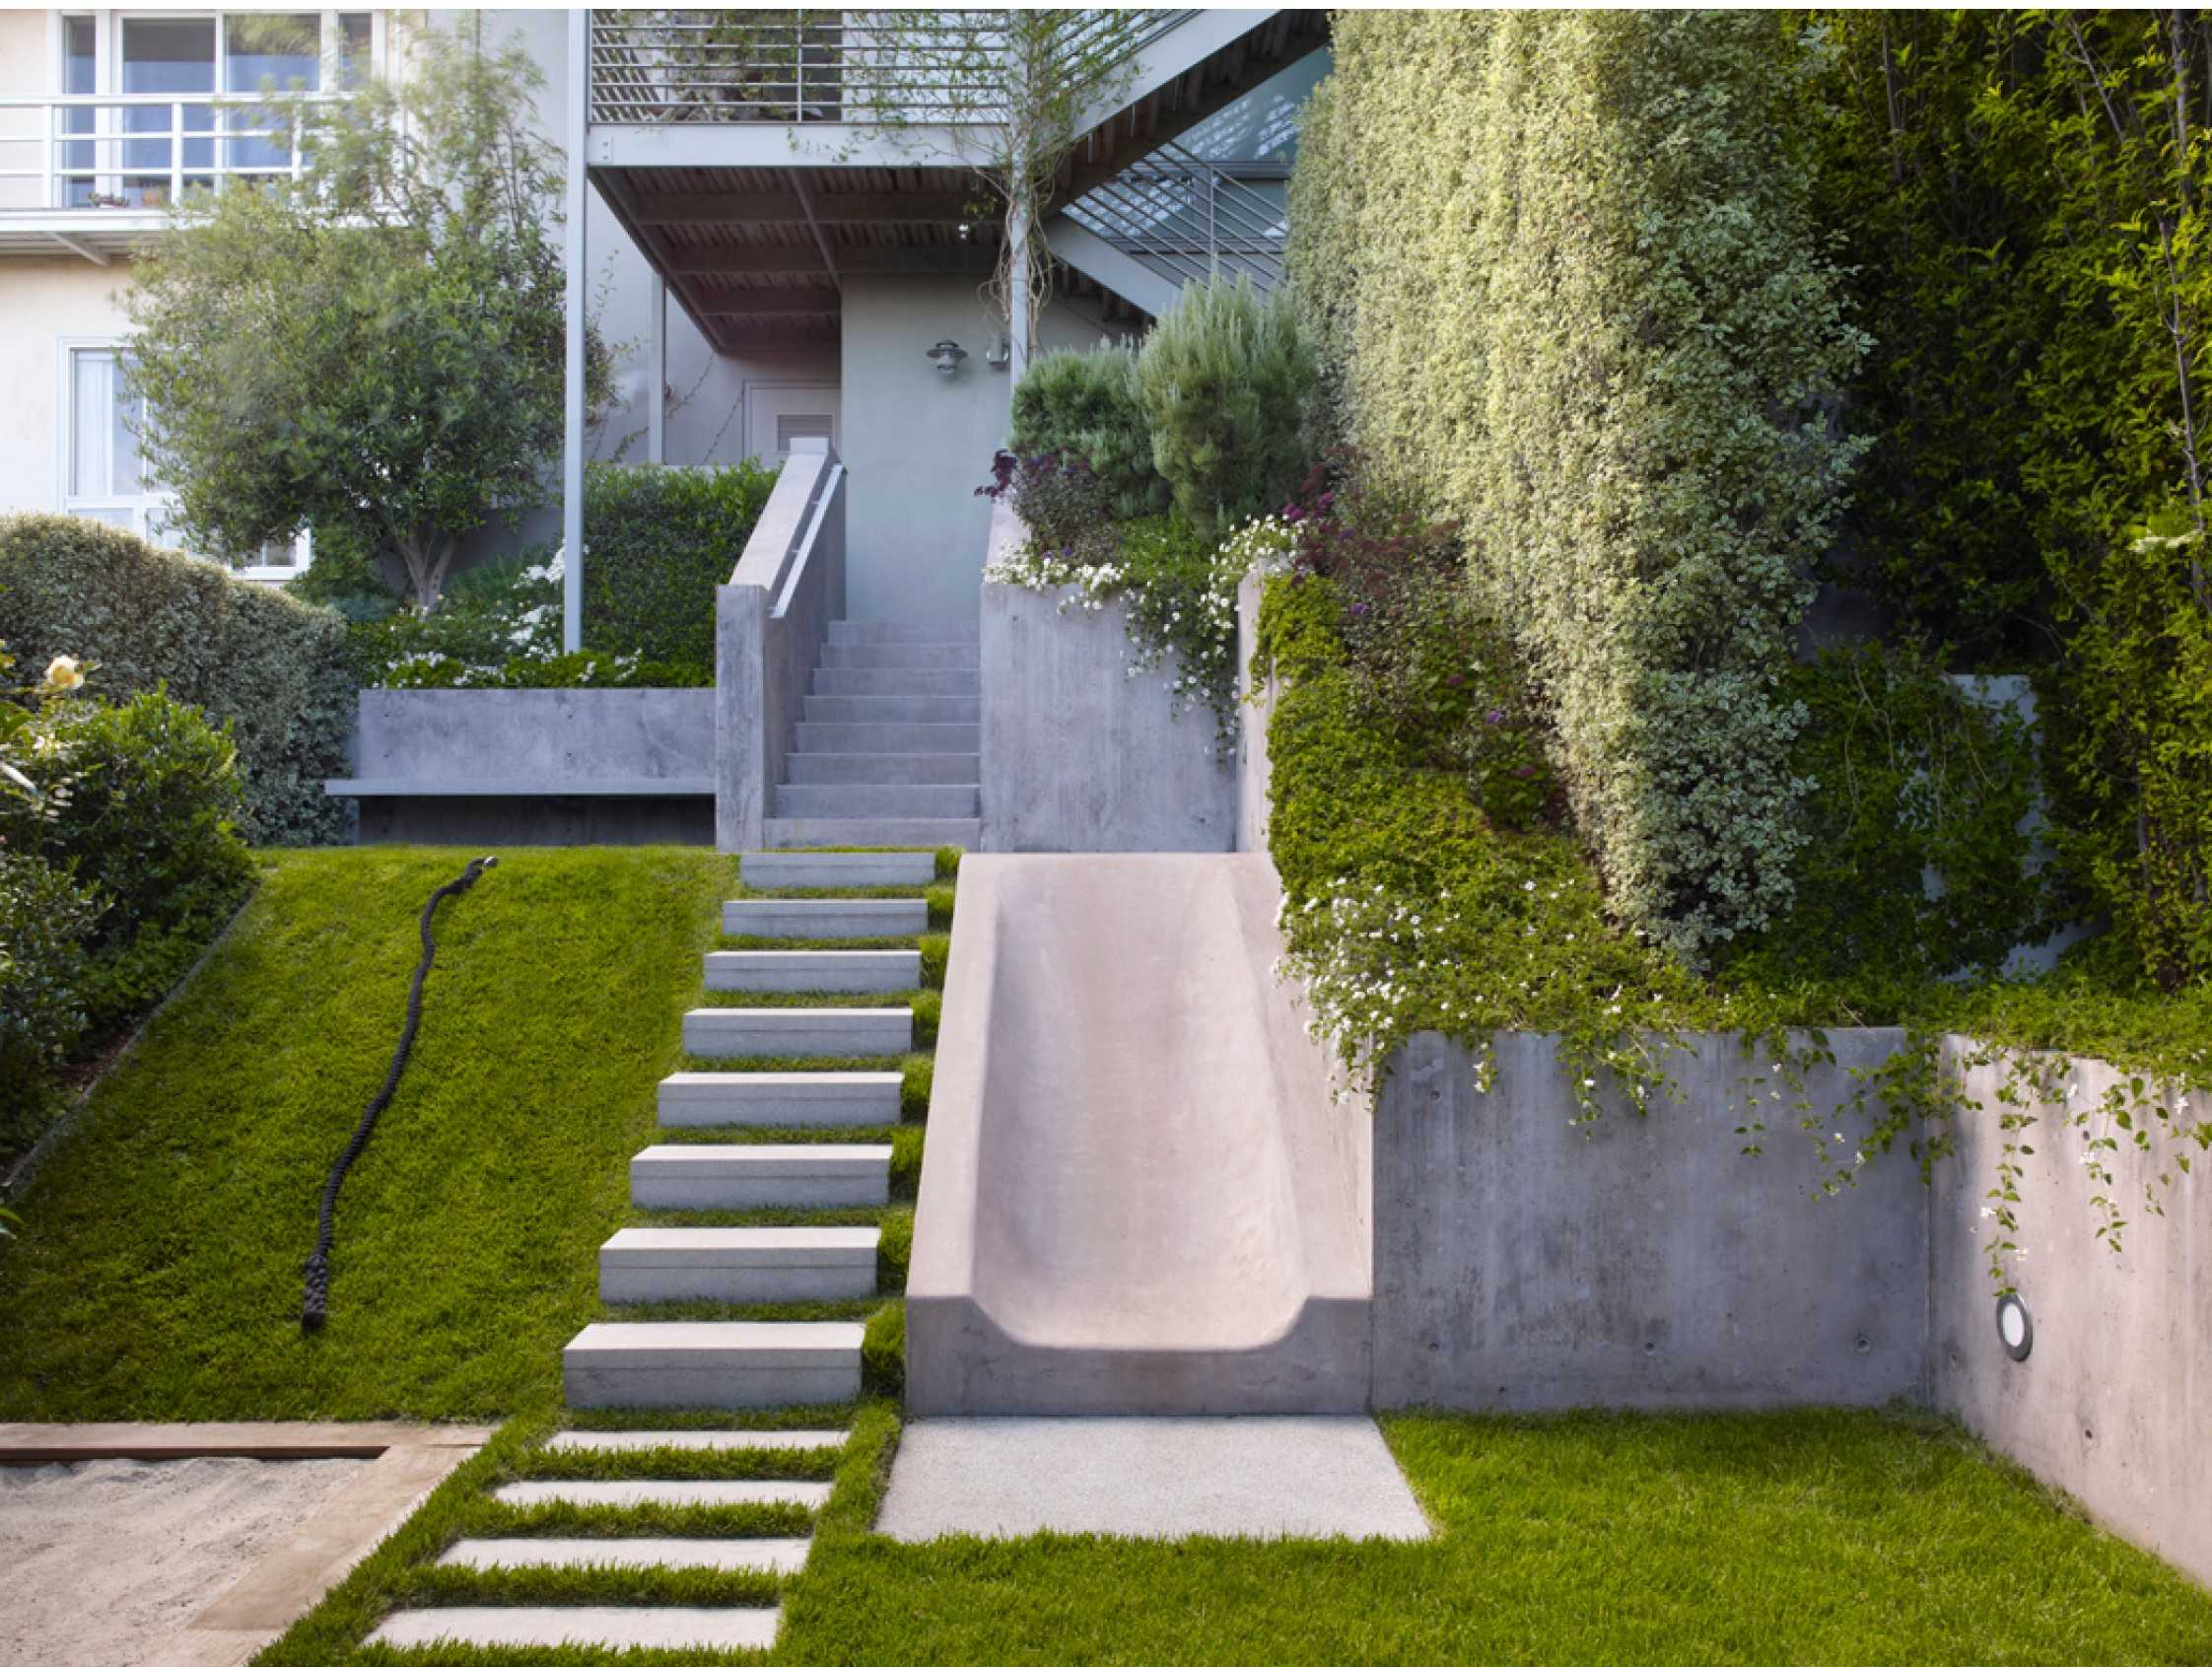 Landscape ideas grade changes terraces and steps for How to design landscaping